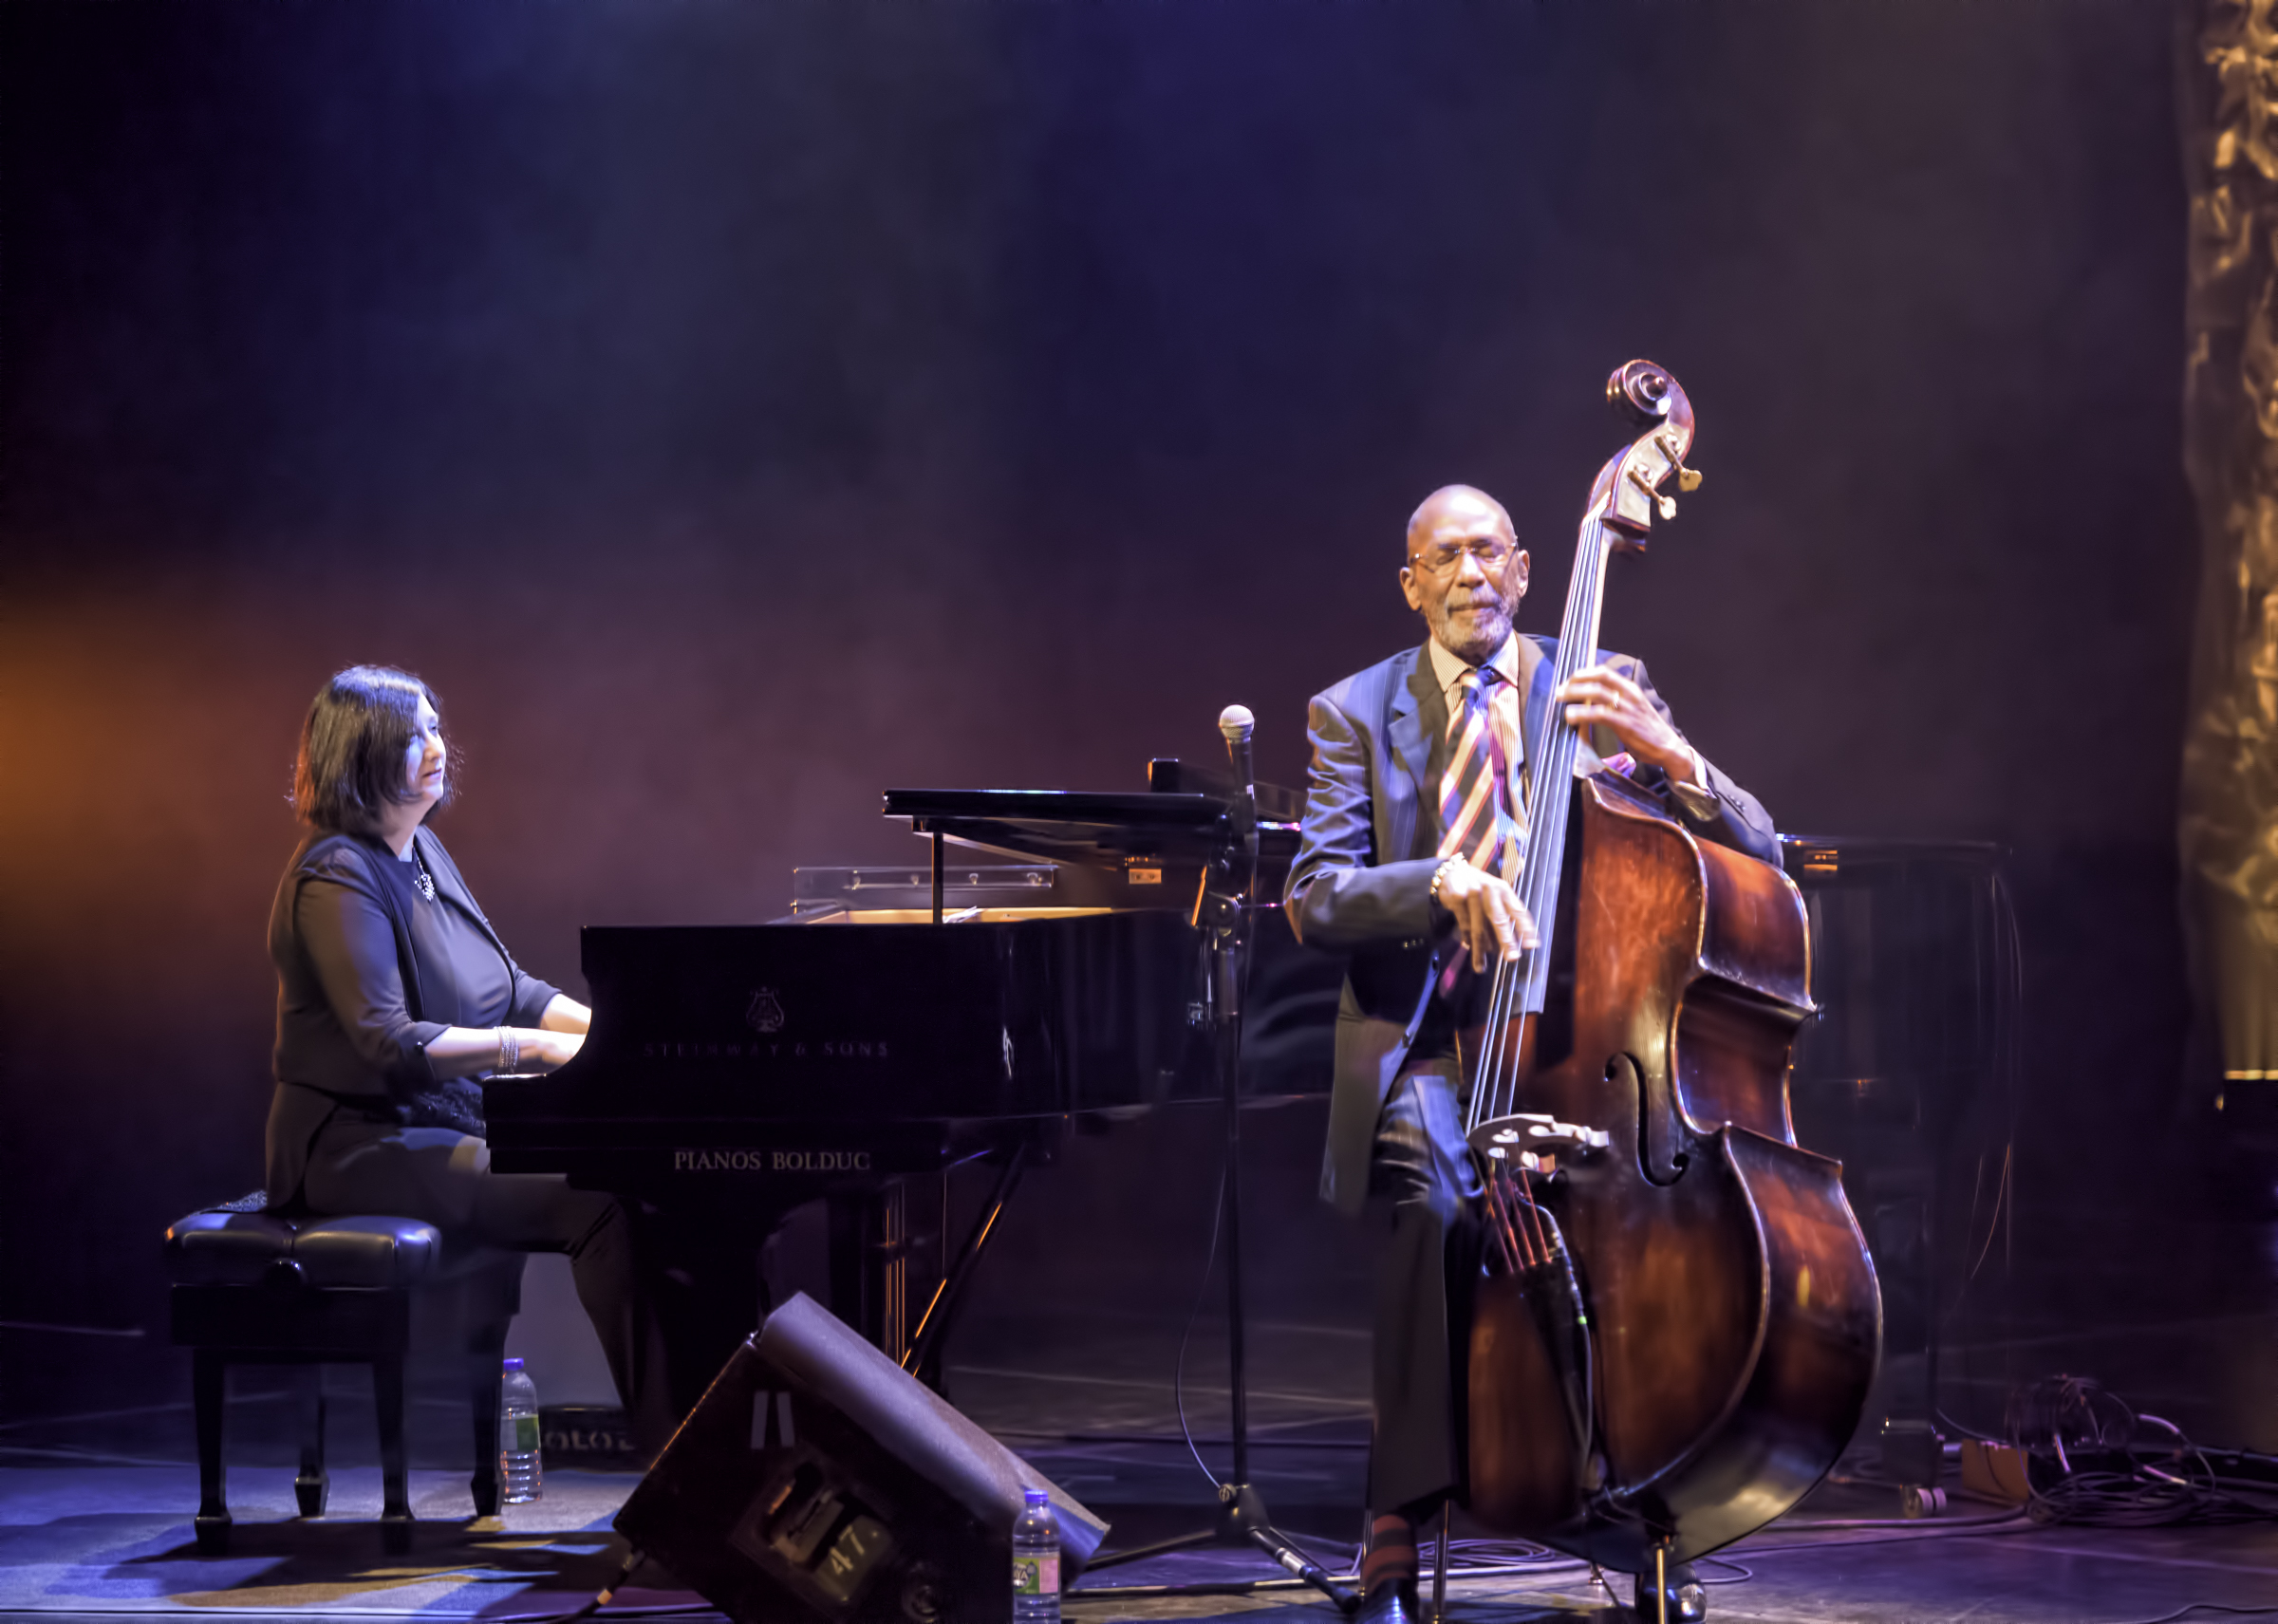 Renee Rosnes and Ron Carter at the Montreal Jazz Festival 2015